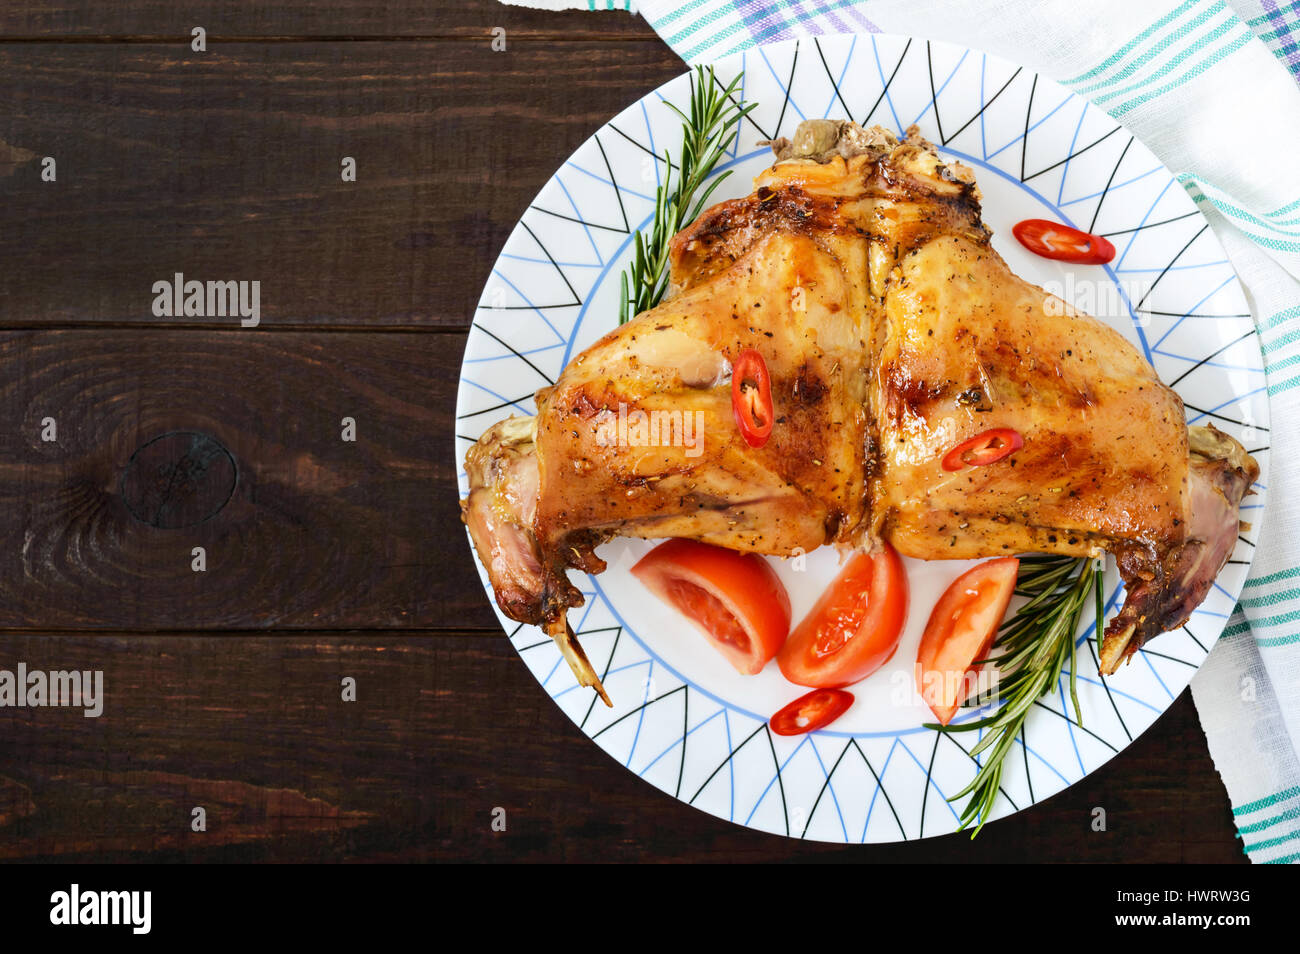 Baked rabbit legs on a plate on a dark wooden background. Dietary menu. Top view. - Stock Image